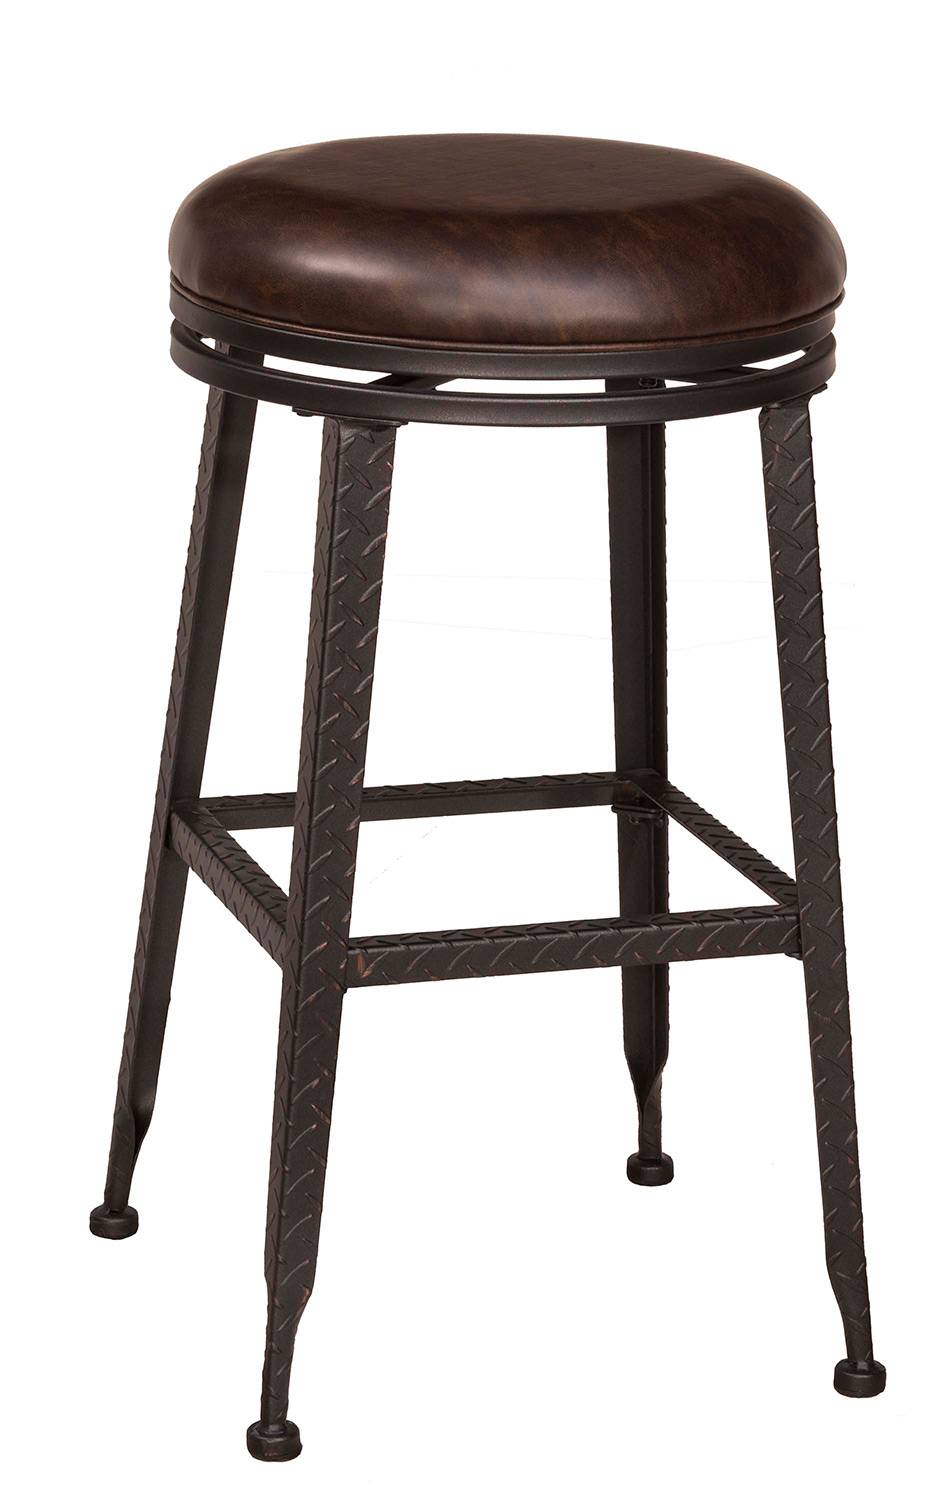 Hillsdale Hale Backless Swivel Counter Stool Black